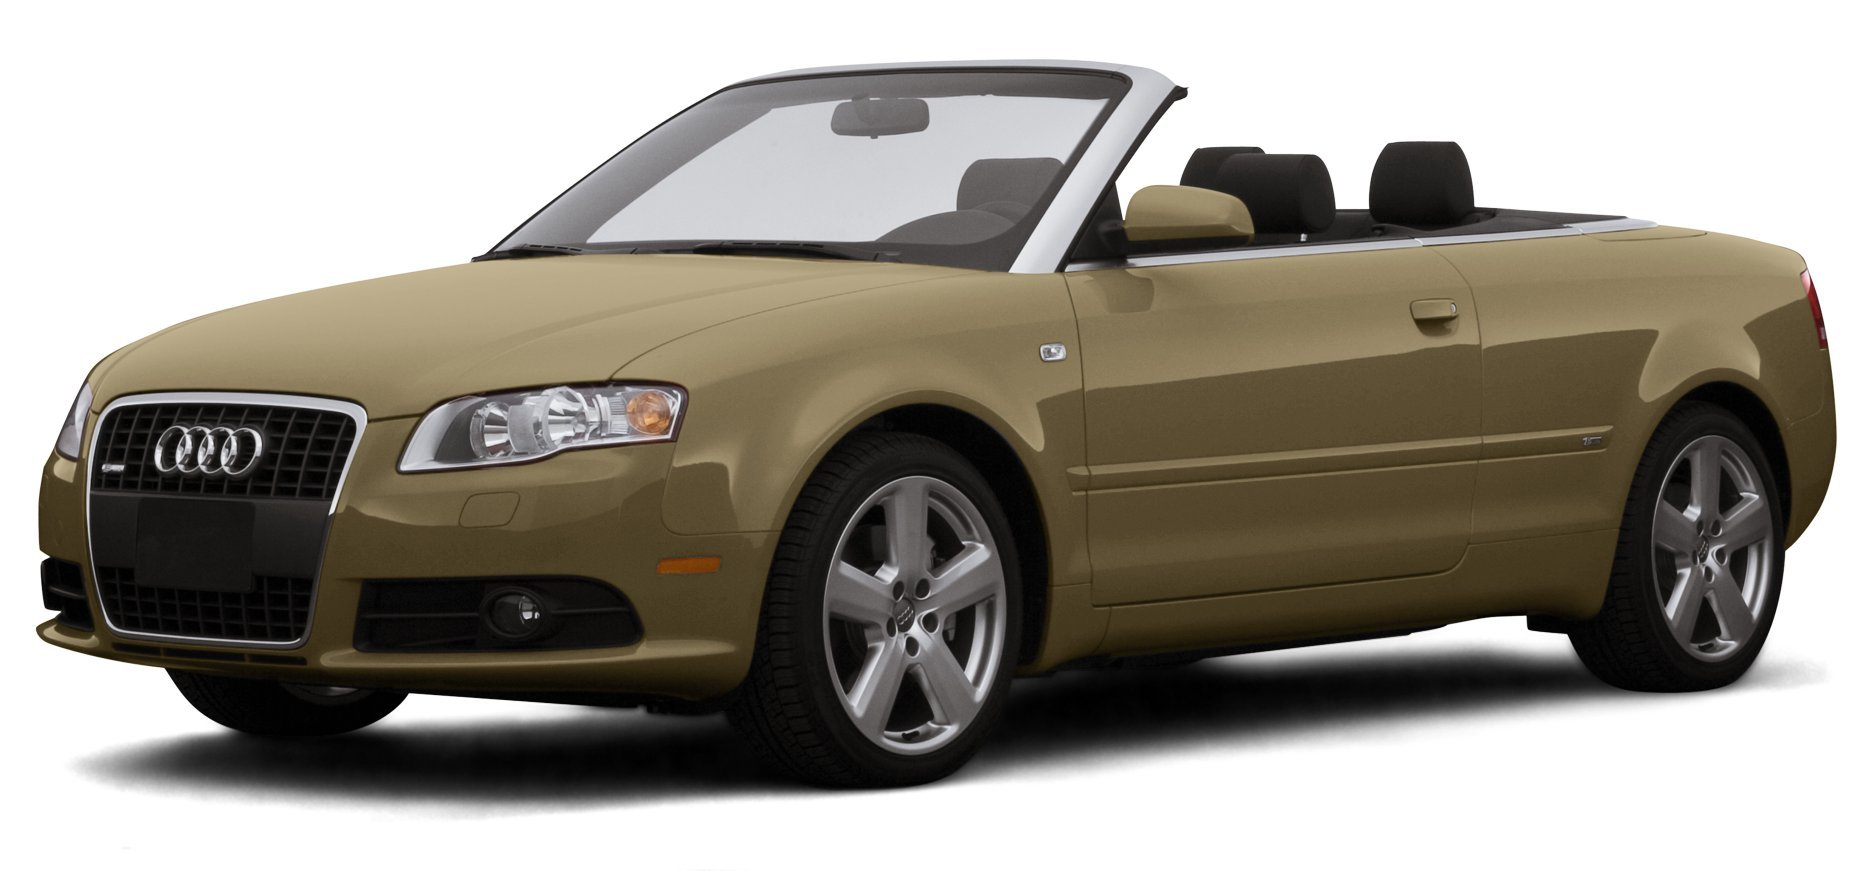 Amazoncom 2007 Audi A4 Reviews Images And Specs Vehicles